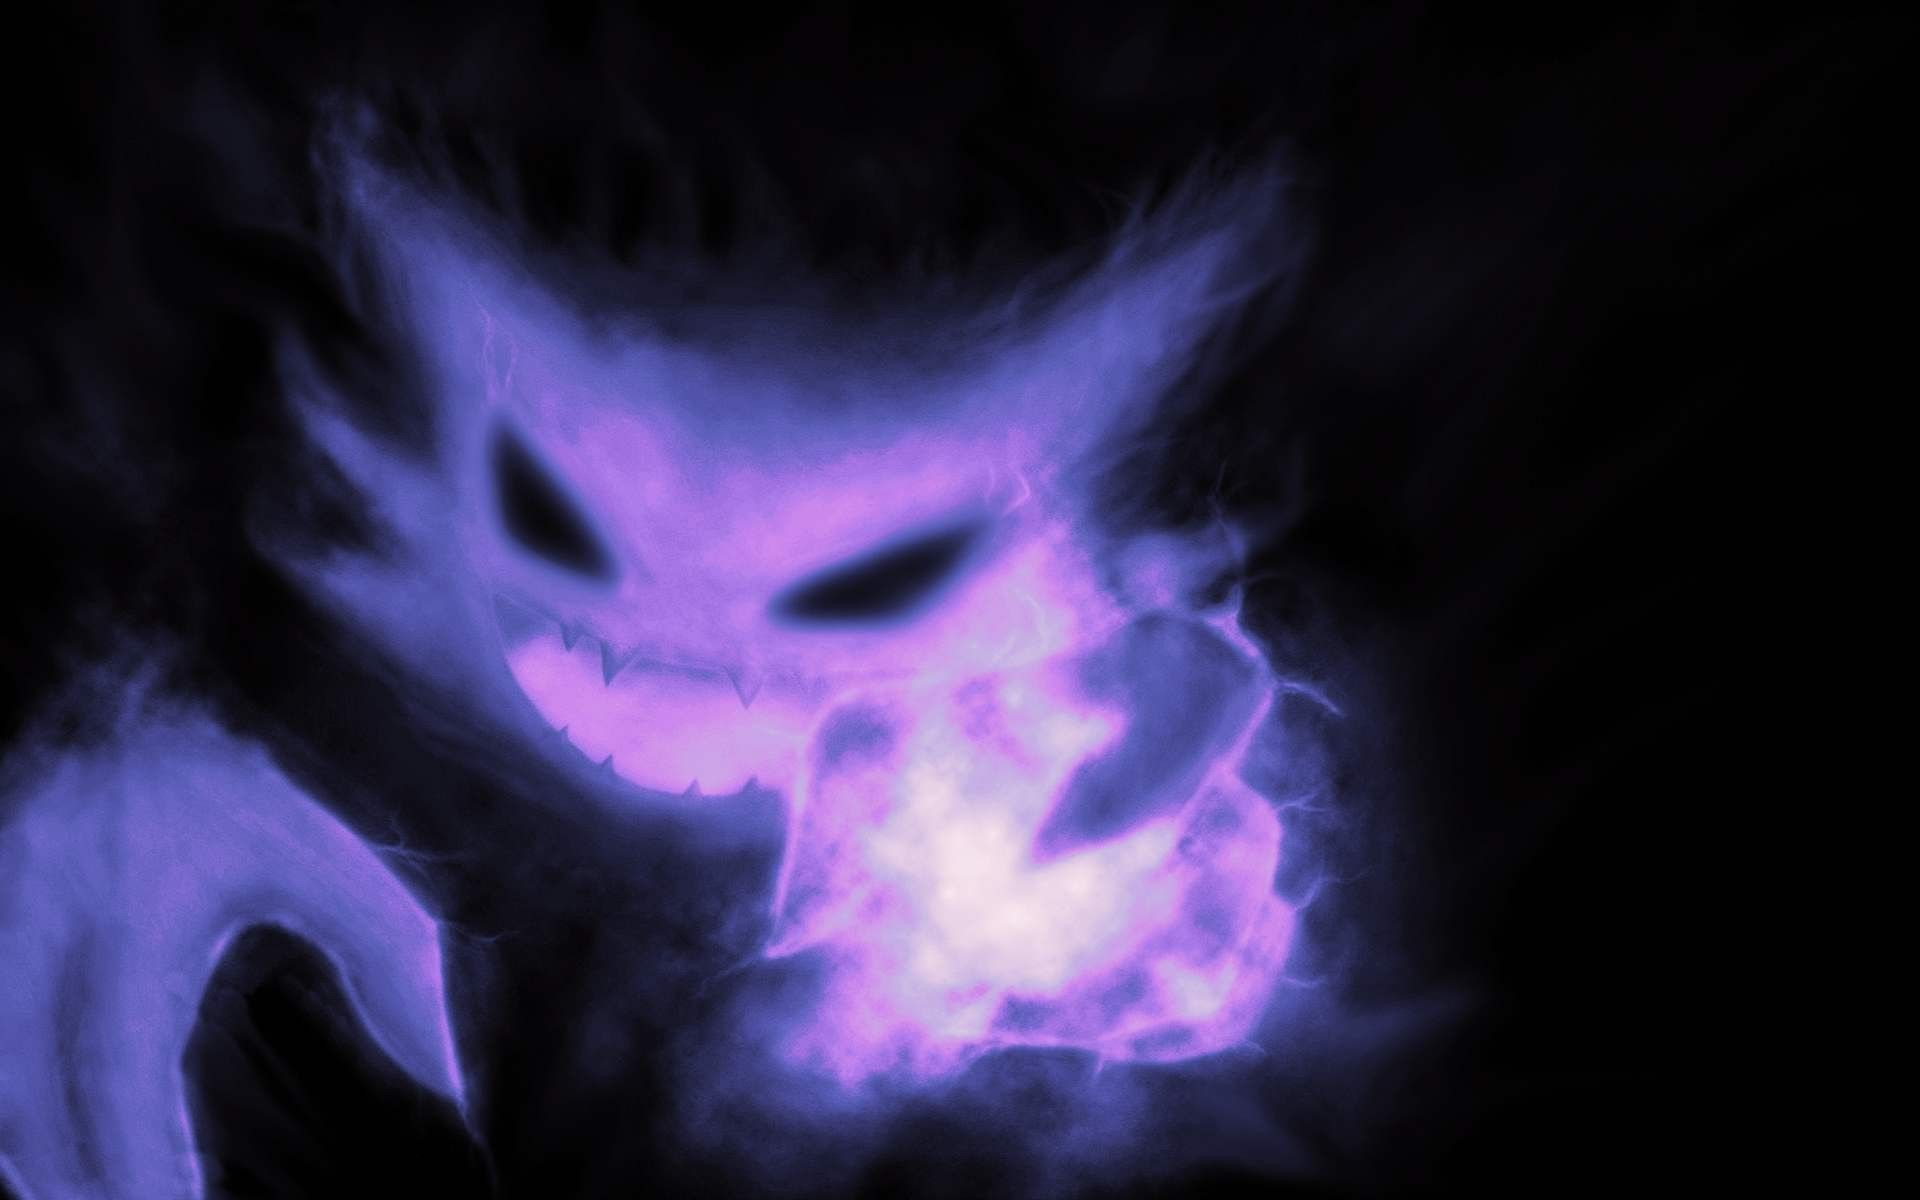 evil purple face of smoke in the dark